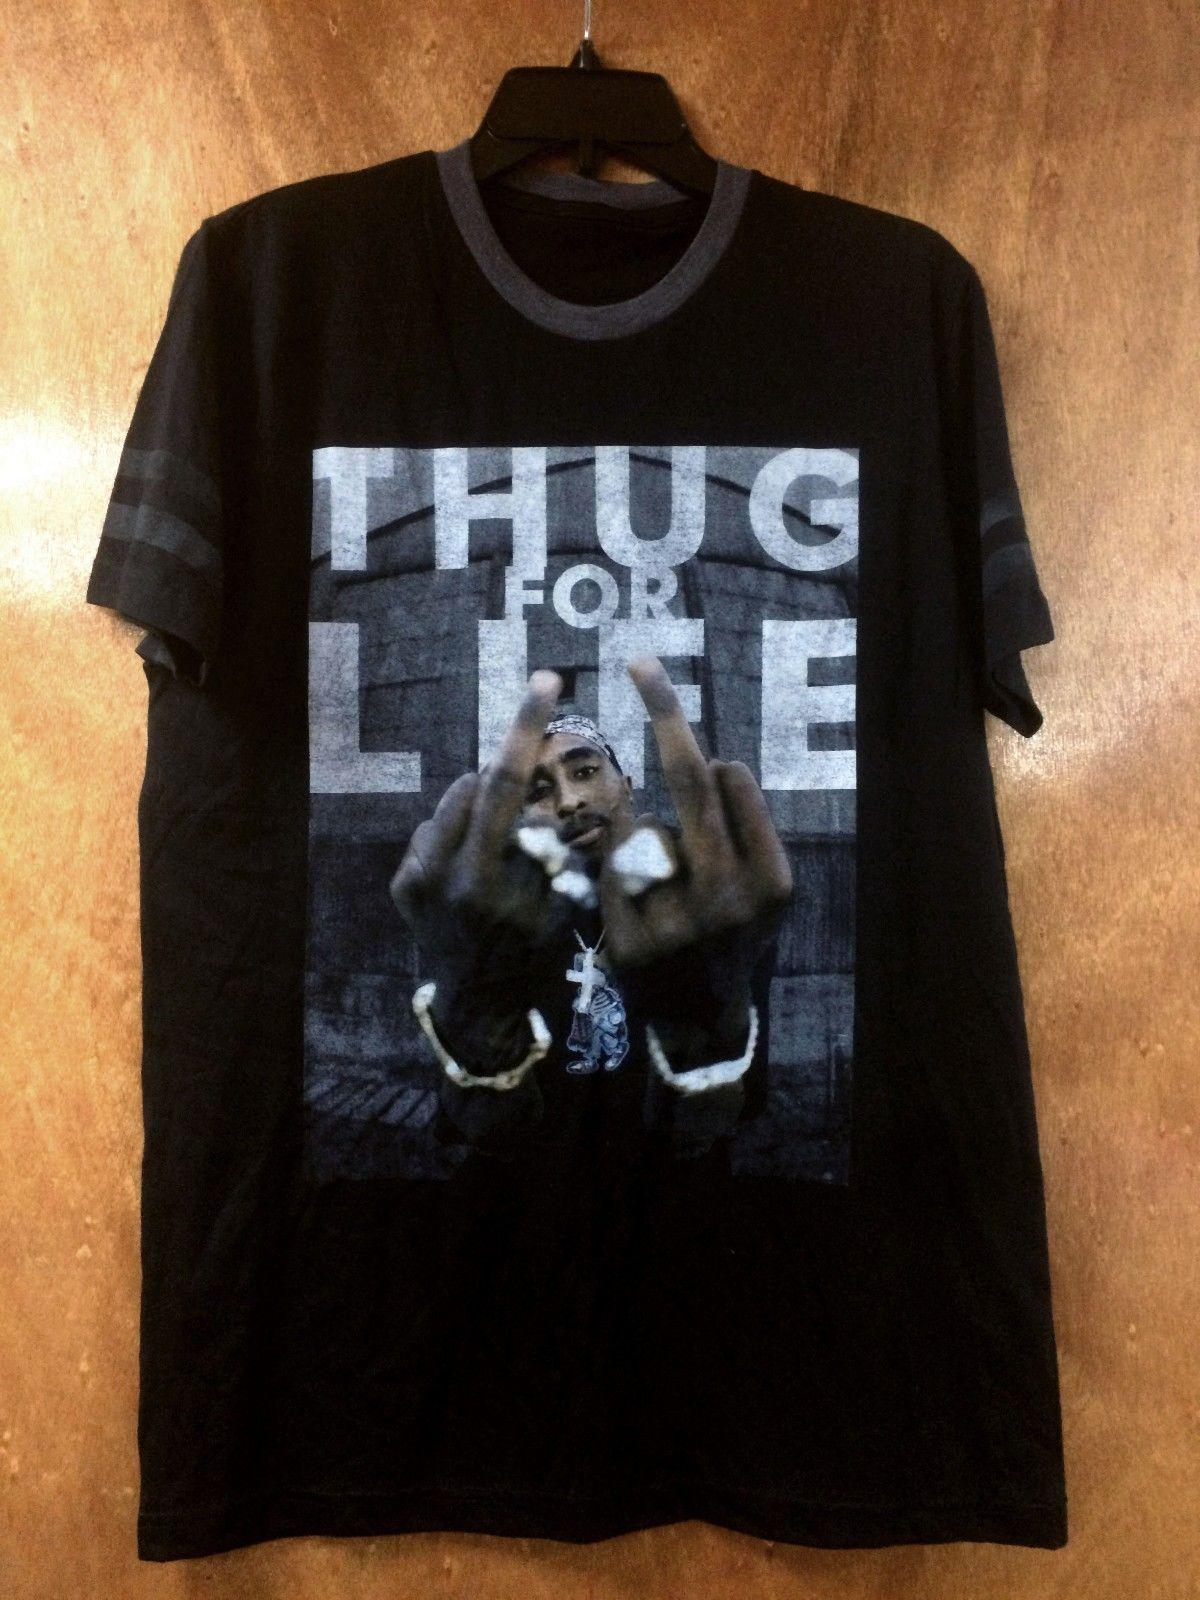 532571e6e68 NWT TUPAC SHAKUR 2pac BLACK TEE 2pac THUG FOR LIFE BLACK Graphic T Shirt Sz  S Men Women Unisex Fashion Tshirt T Shirt Slogan Daily T Shirts From ...